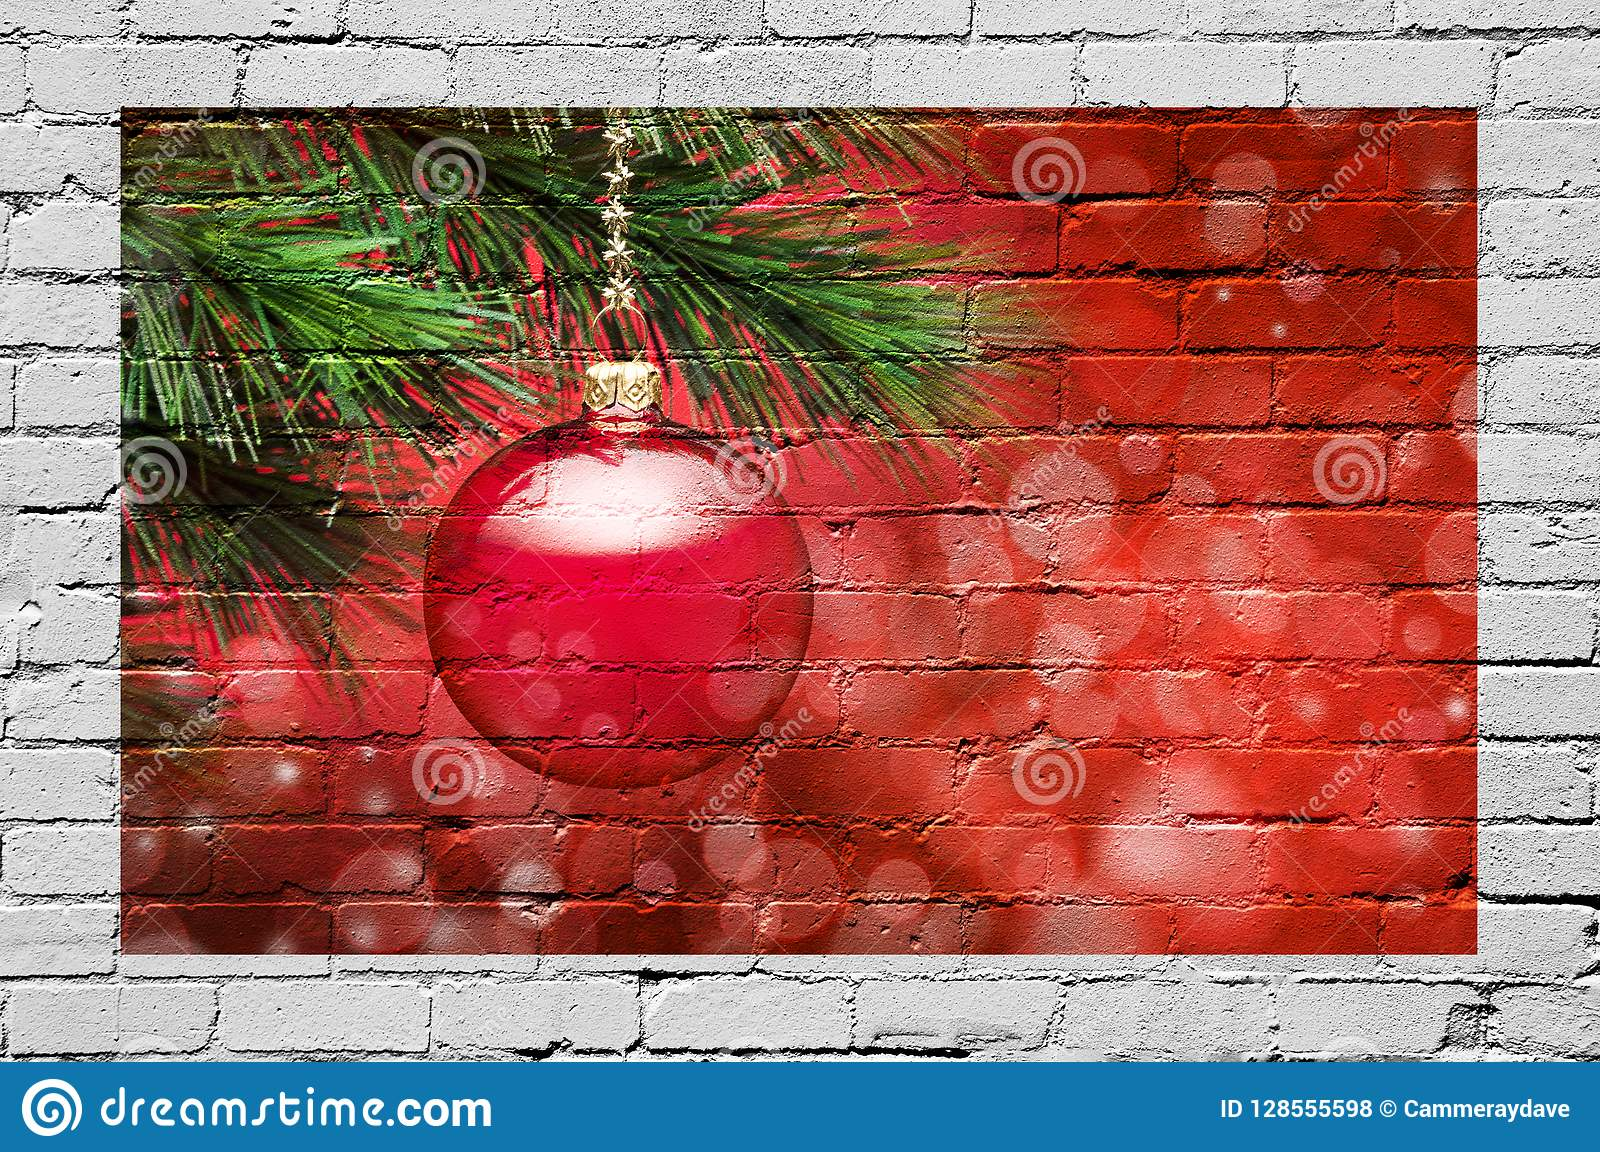 Christmas Tree Ornament Graffiti Background Stock Photo Image Of Green Decorate 128555598